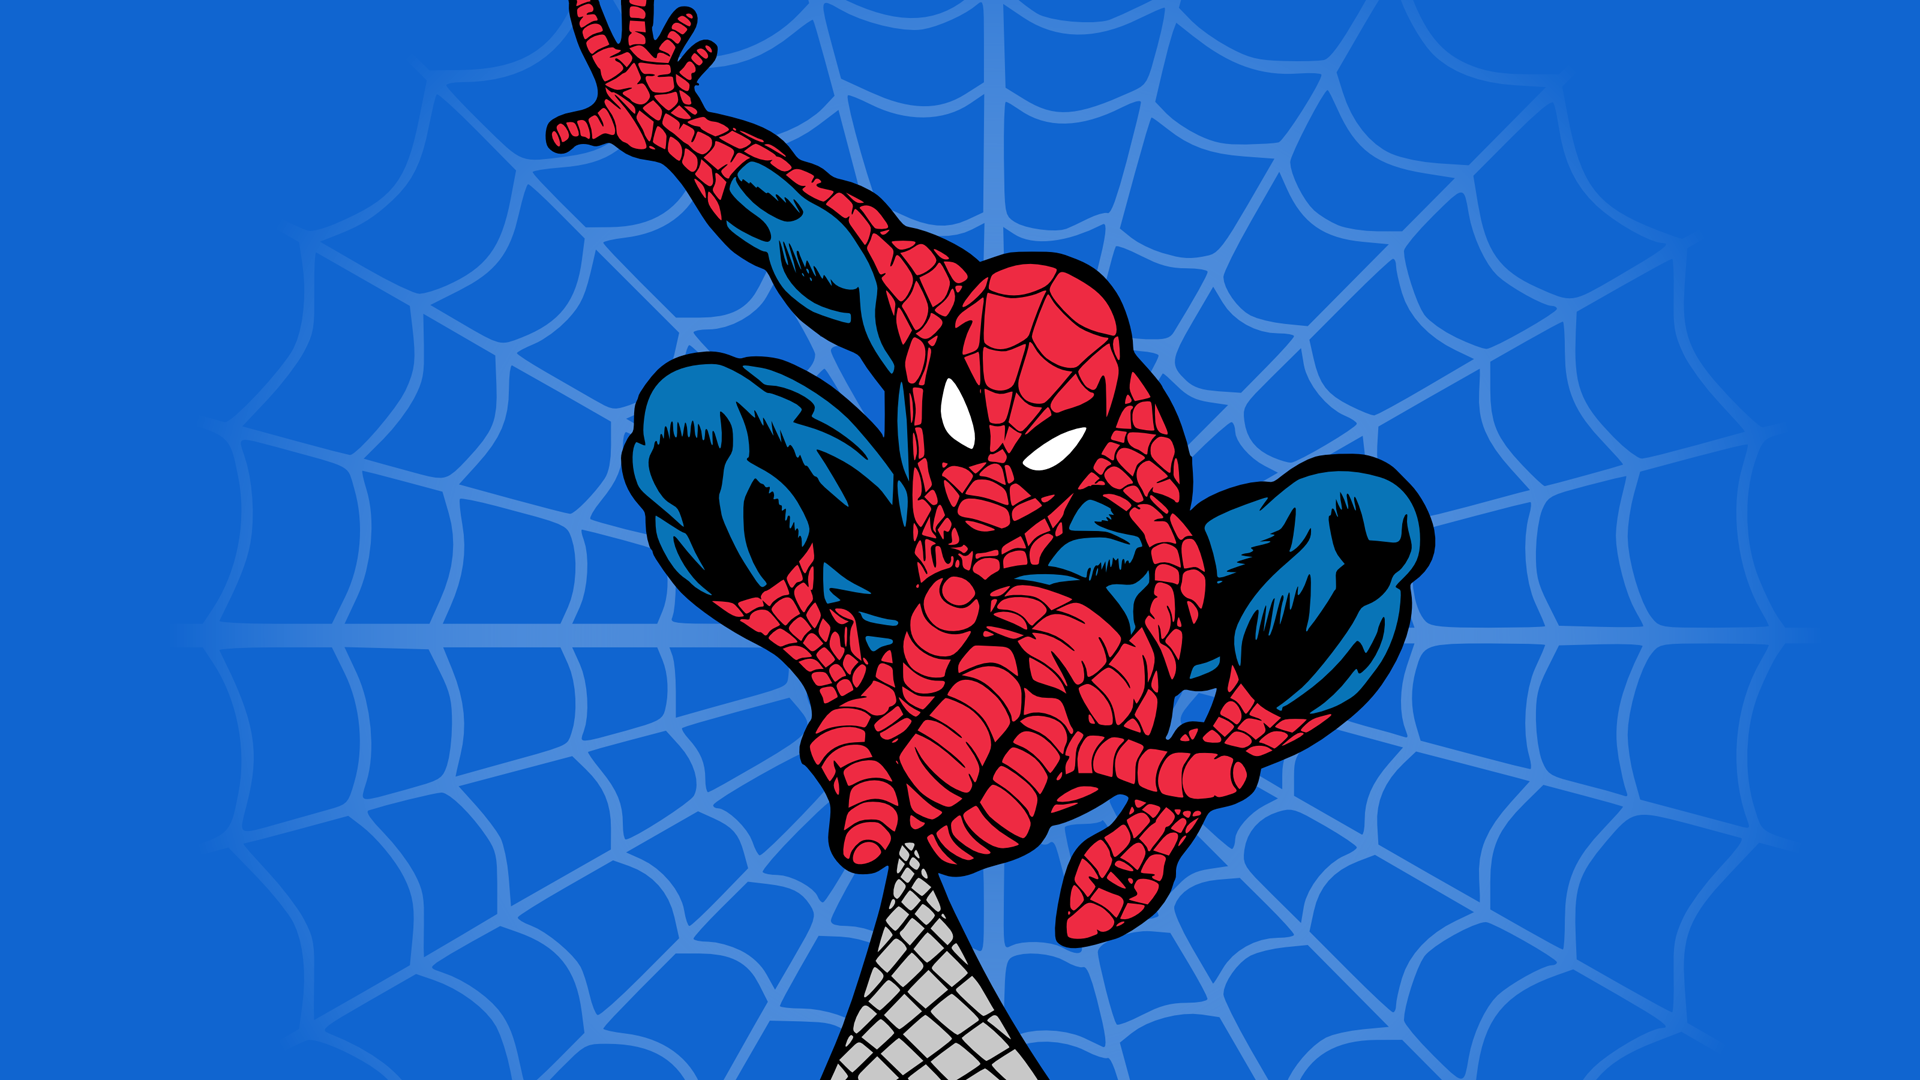 Spiderman Live Wallpaper Hd: Wallpaper.wiki-Spiderman-HD-Image-PIC-WPD007623